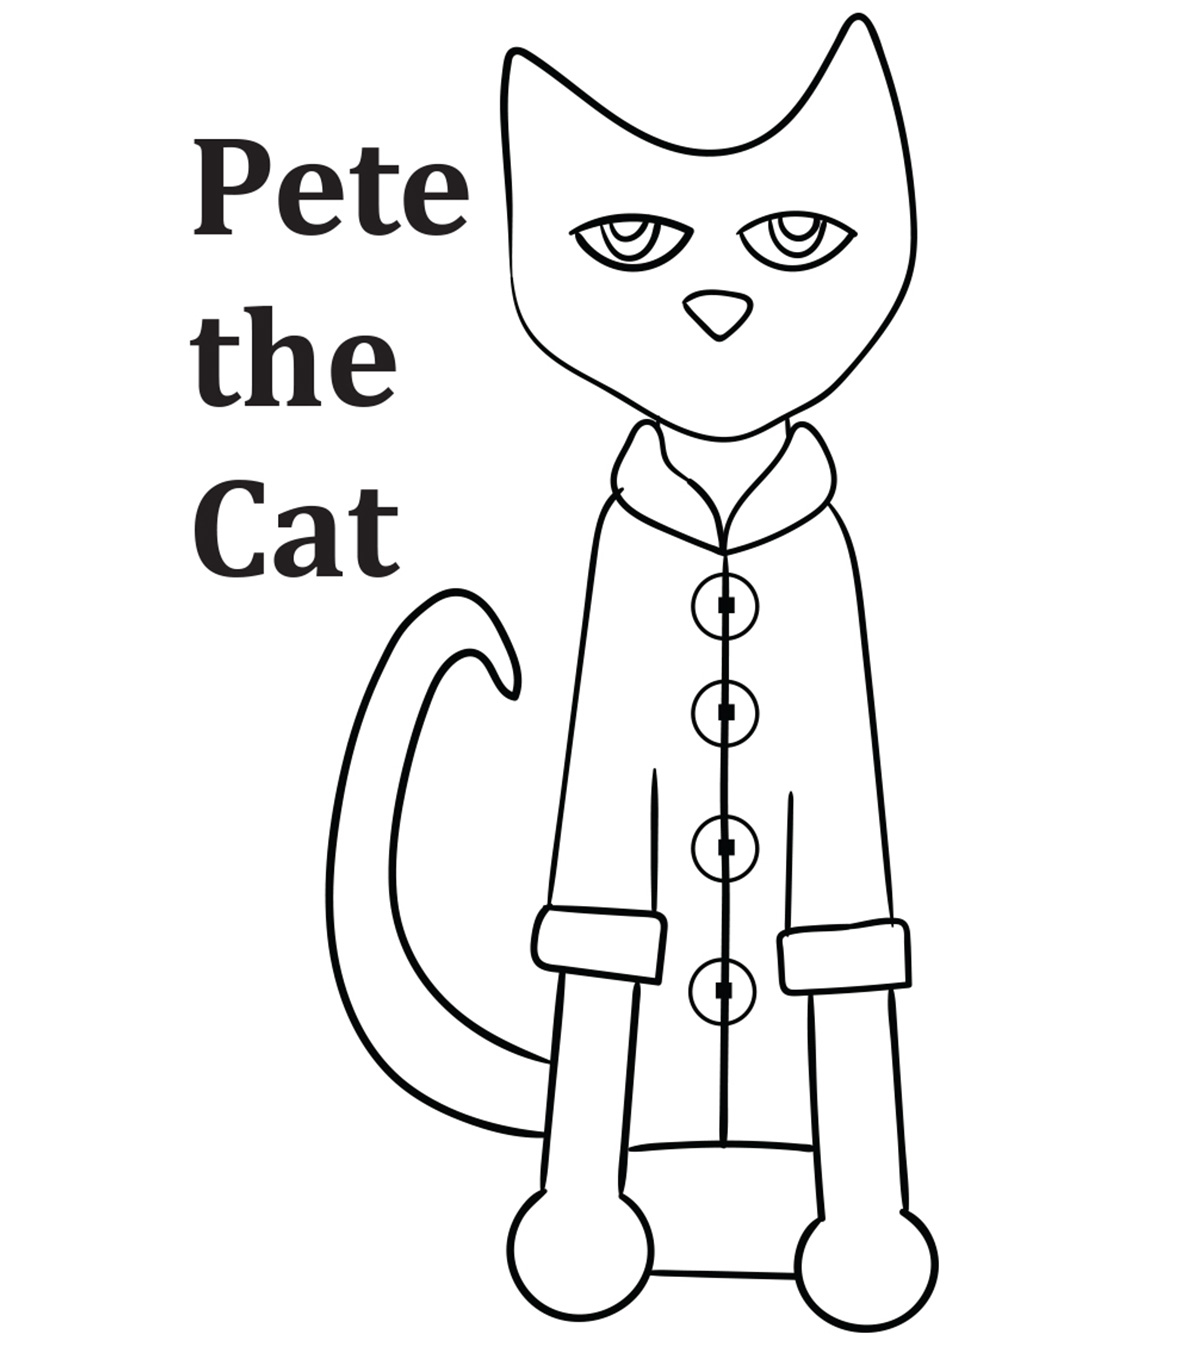 photograph regarding Pete the Cat Printable named Greatest 21 Cost-free Printable Pete The Cat Coloring Internet pages On line